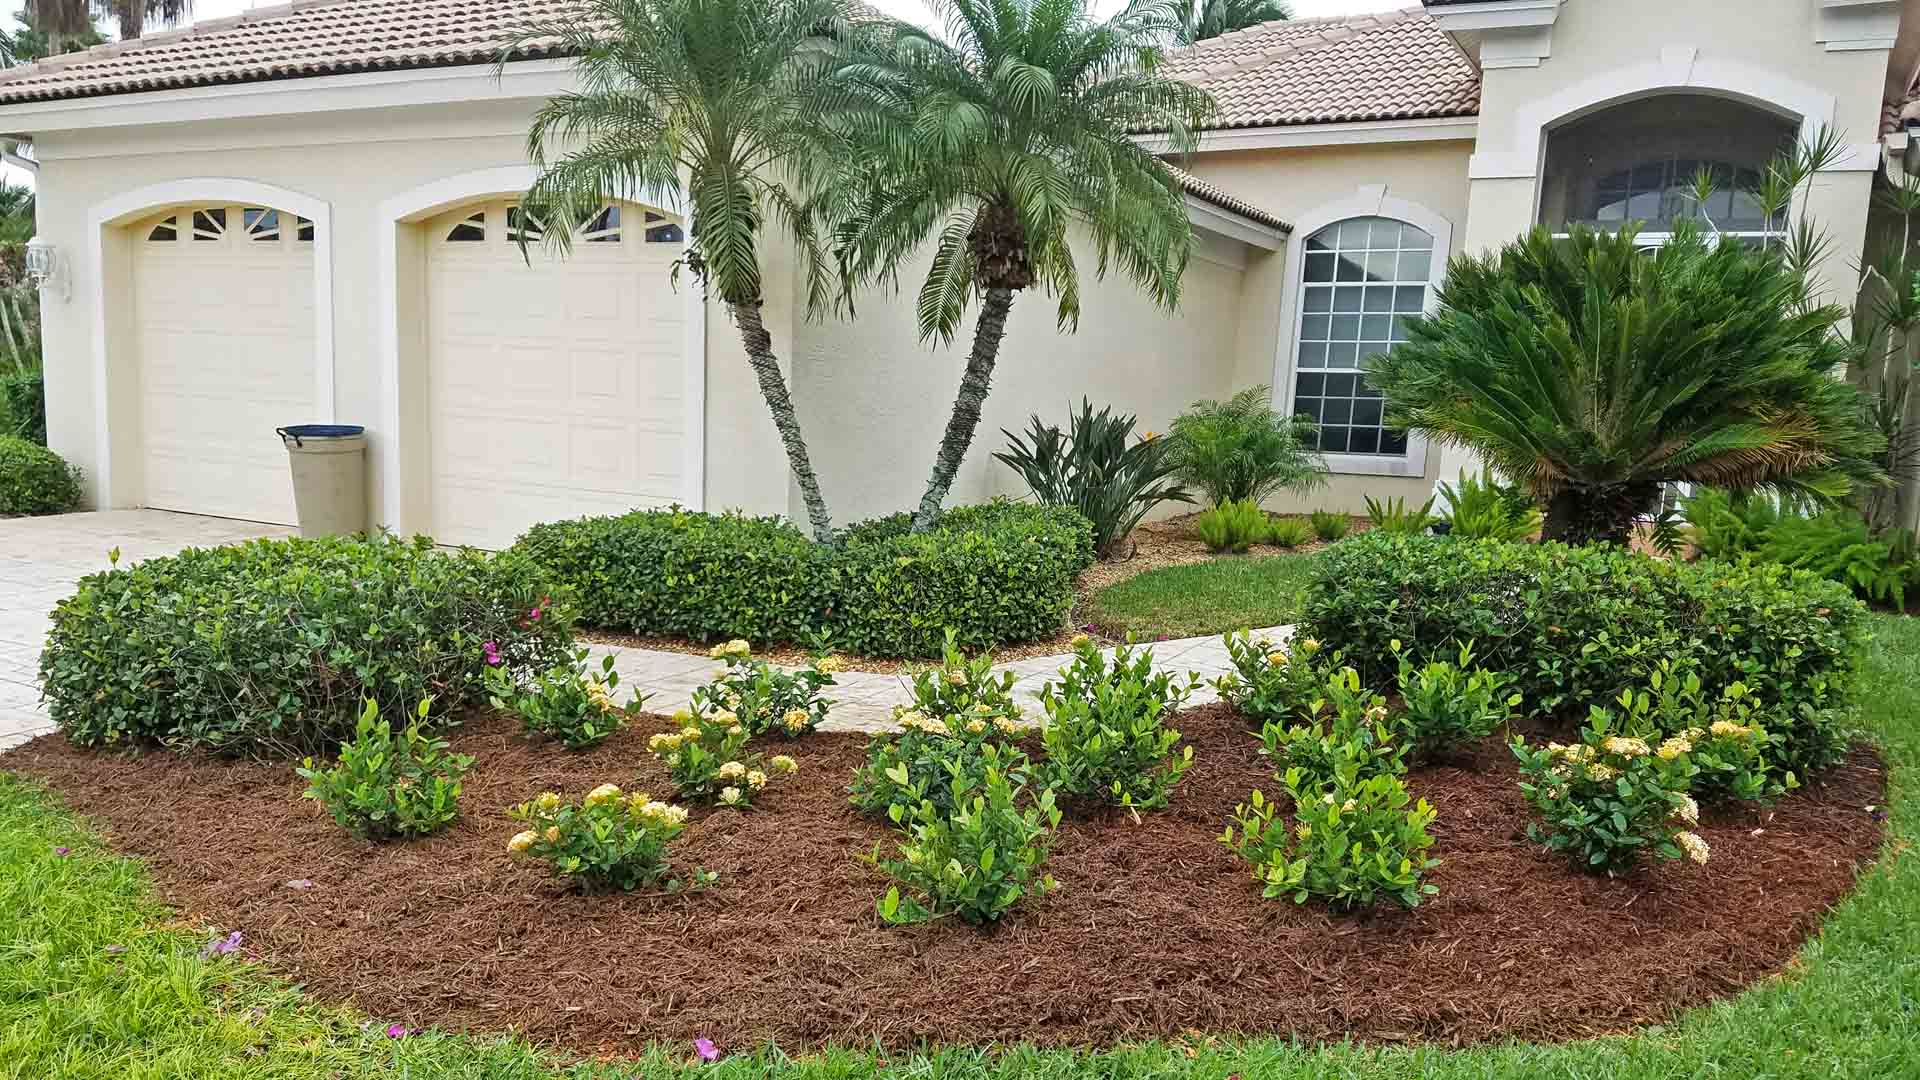 Professional landscaping design and installation by Sunman's Nursery in Fort Myers, FL.